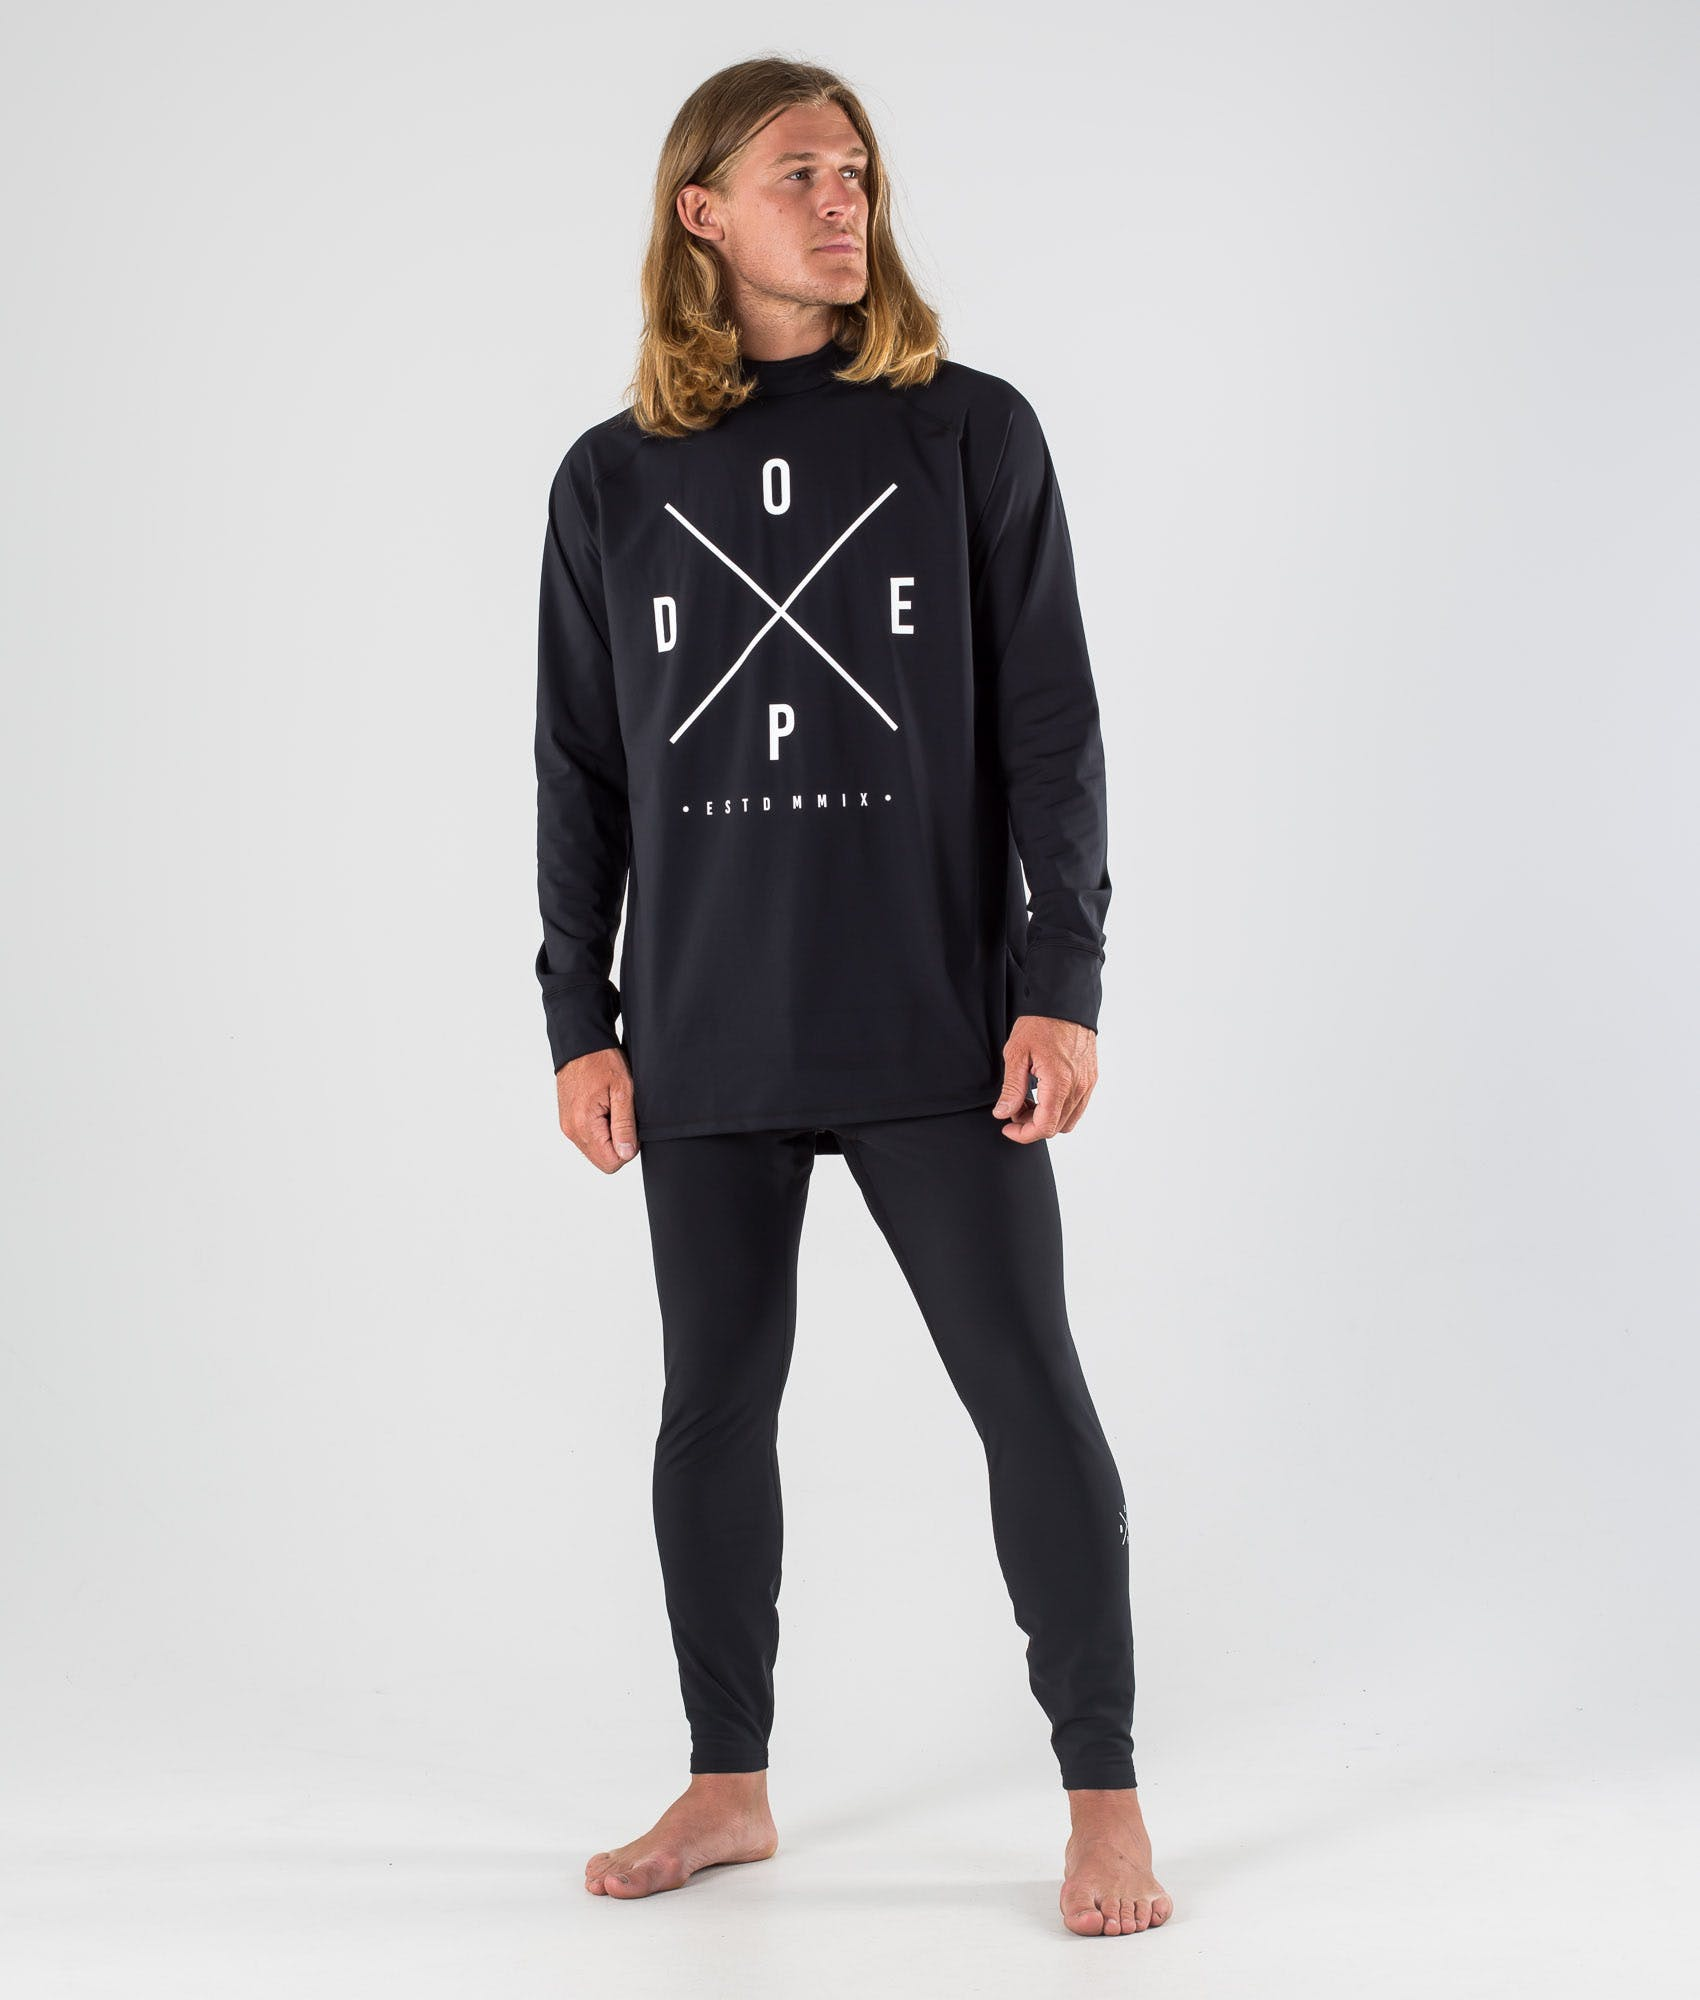 What kind of material should a ski base layer be made out of